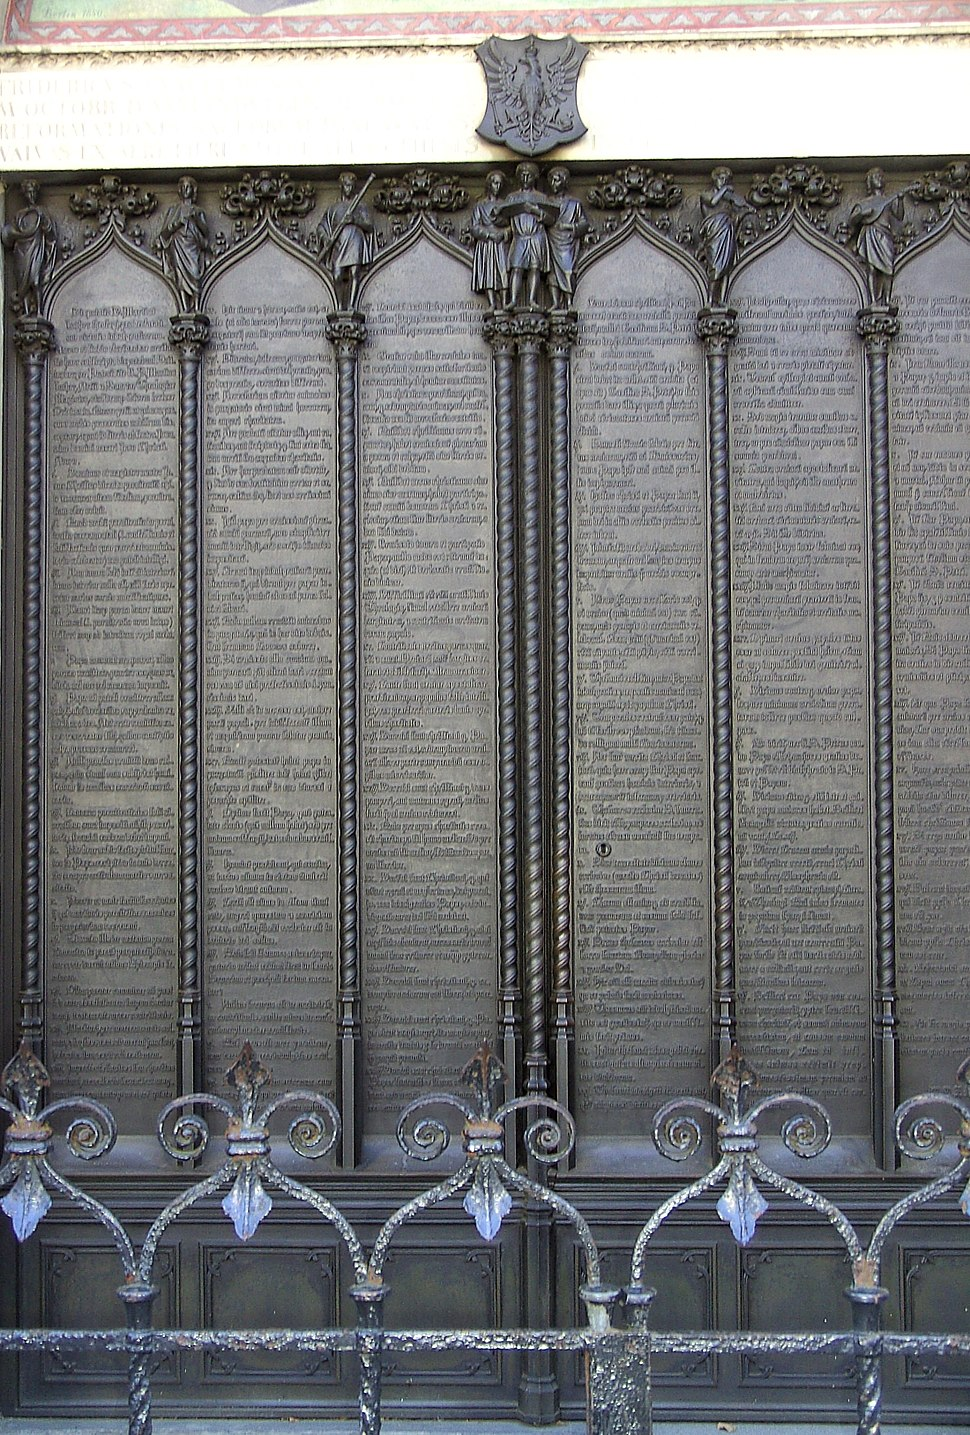 Ninety-Five Theses, Wittenberg